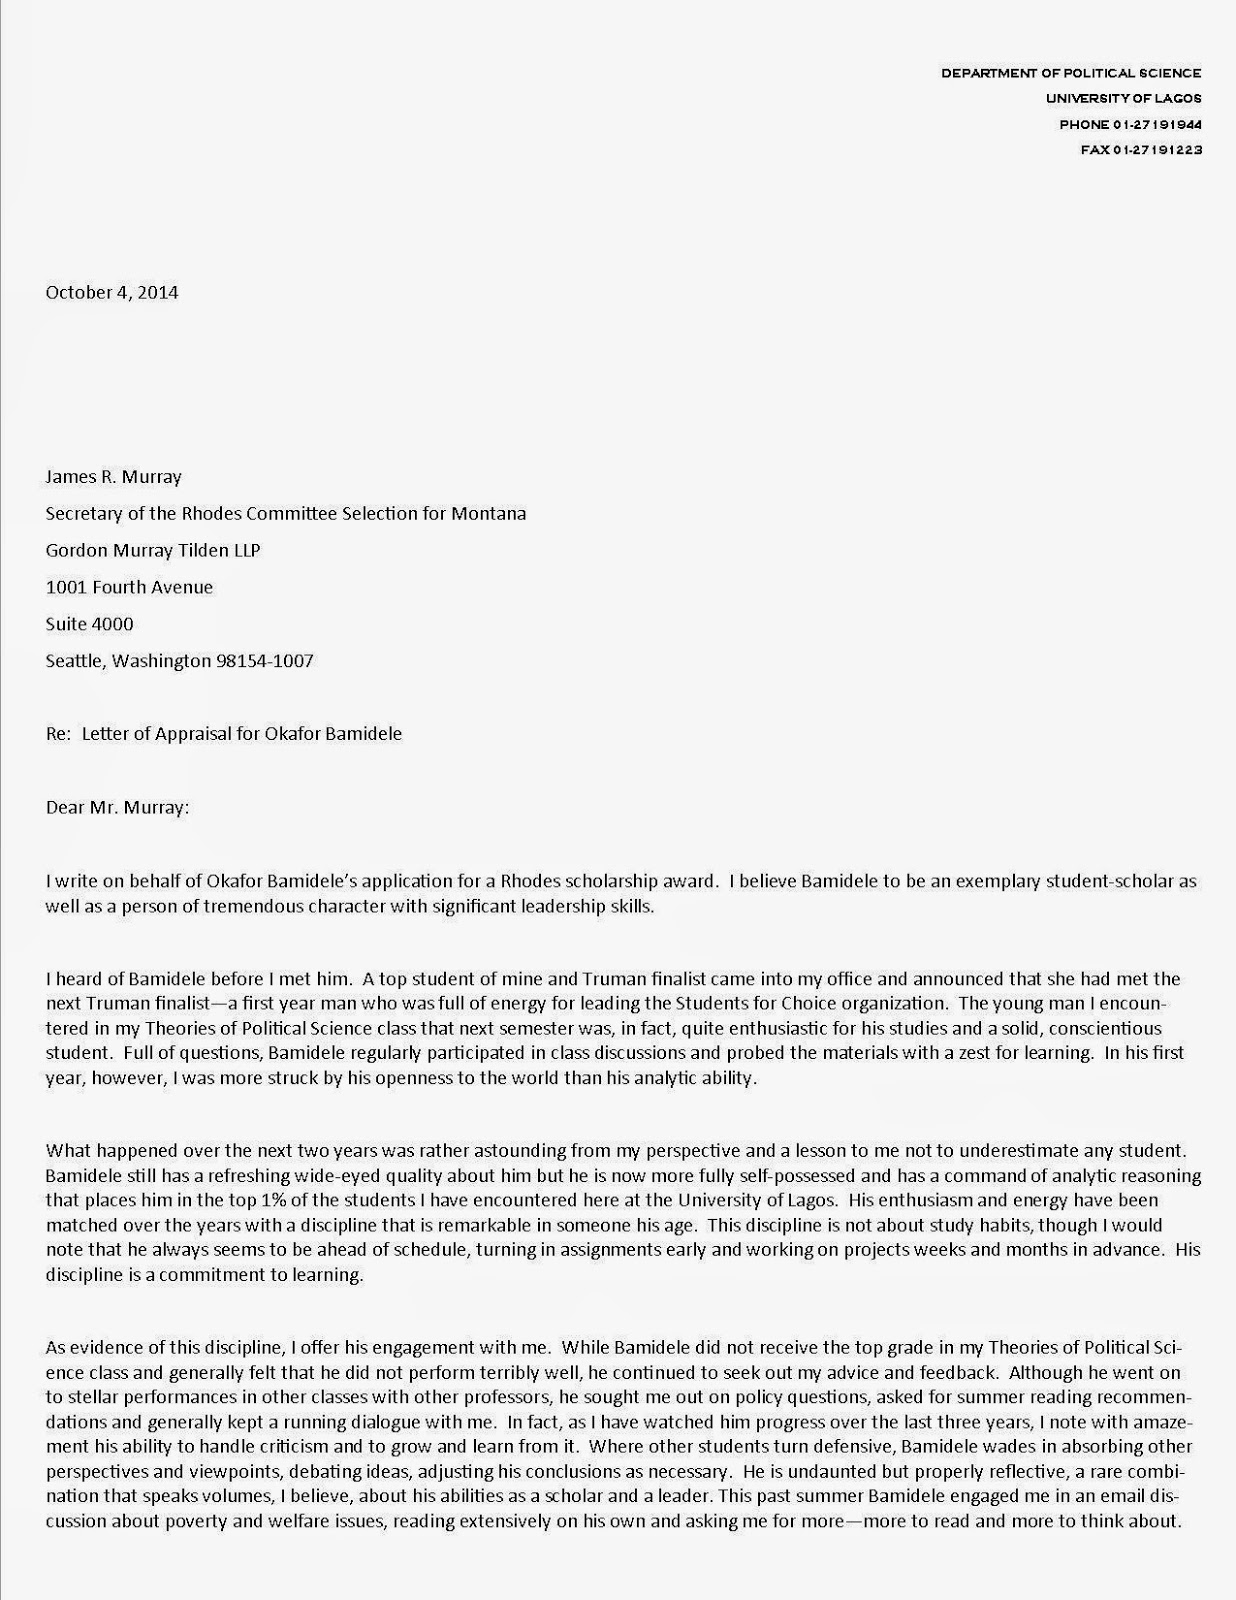 Recommendations essay cheap